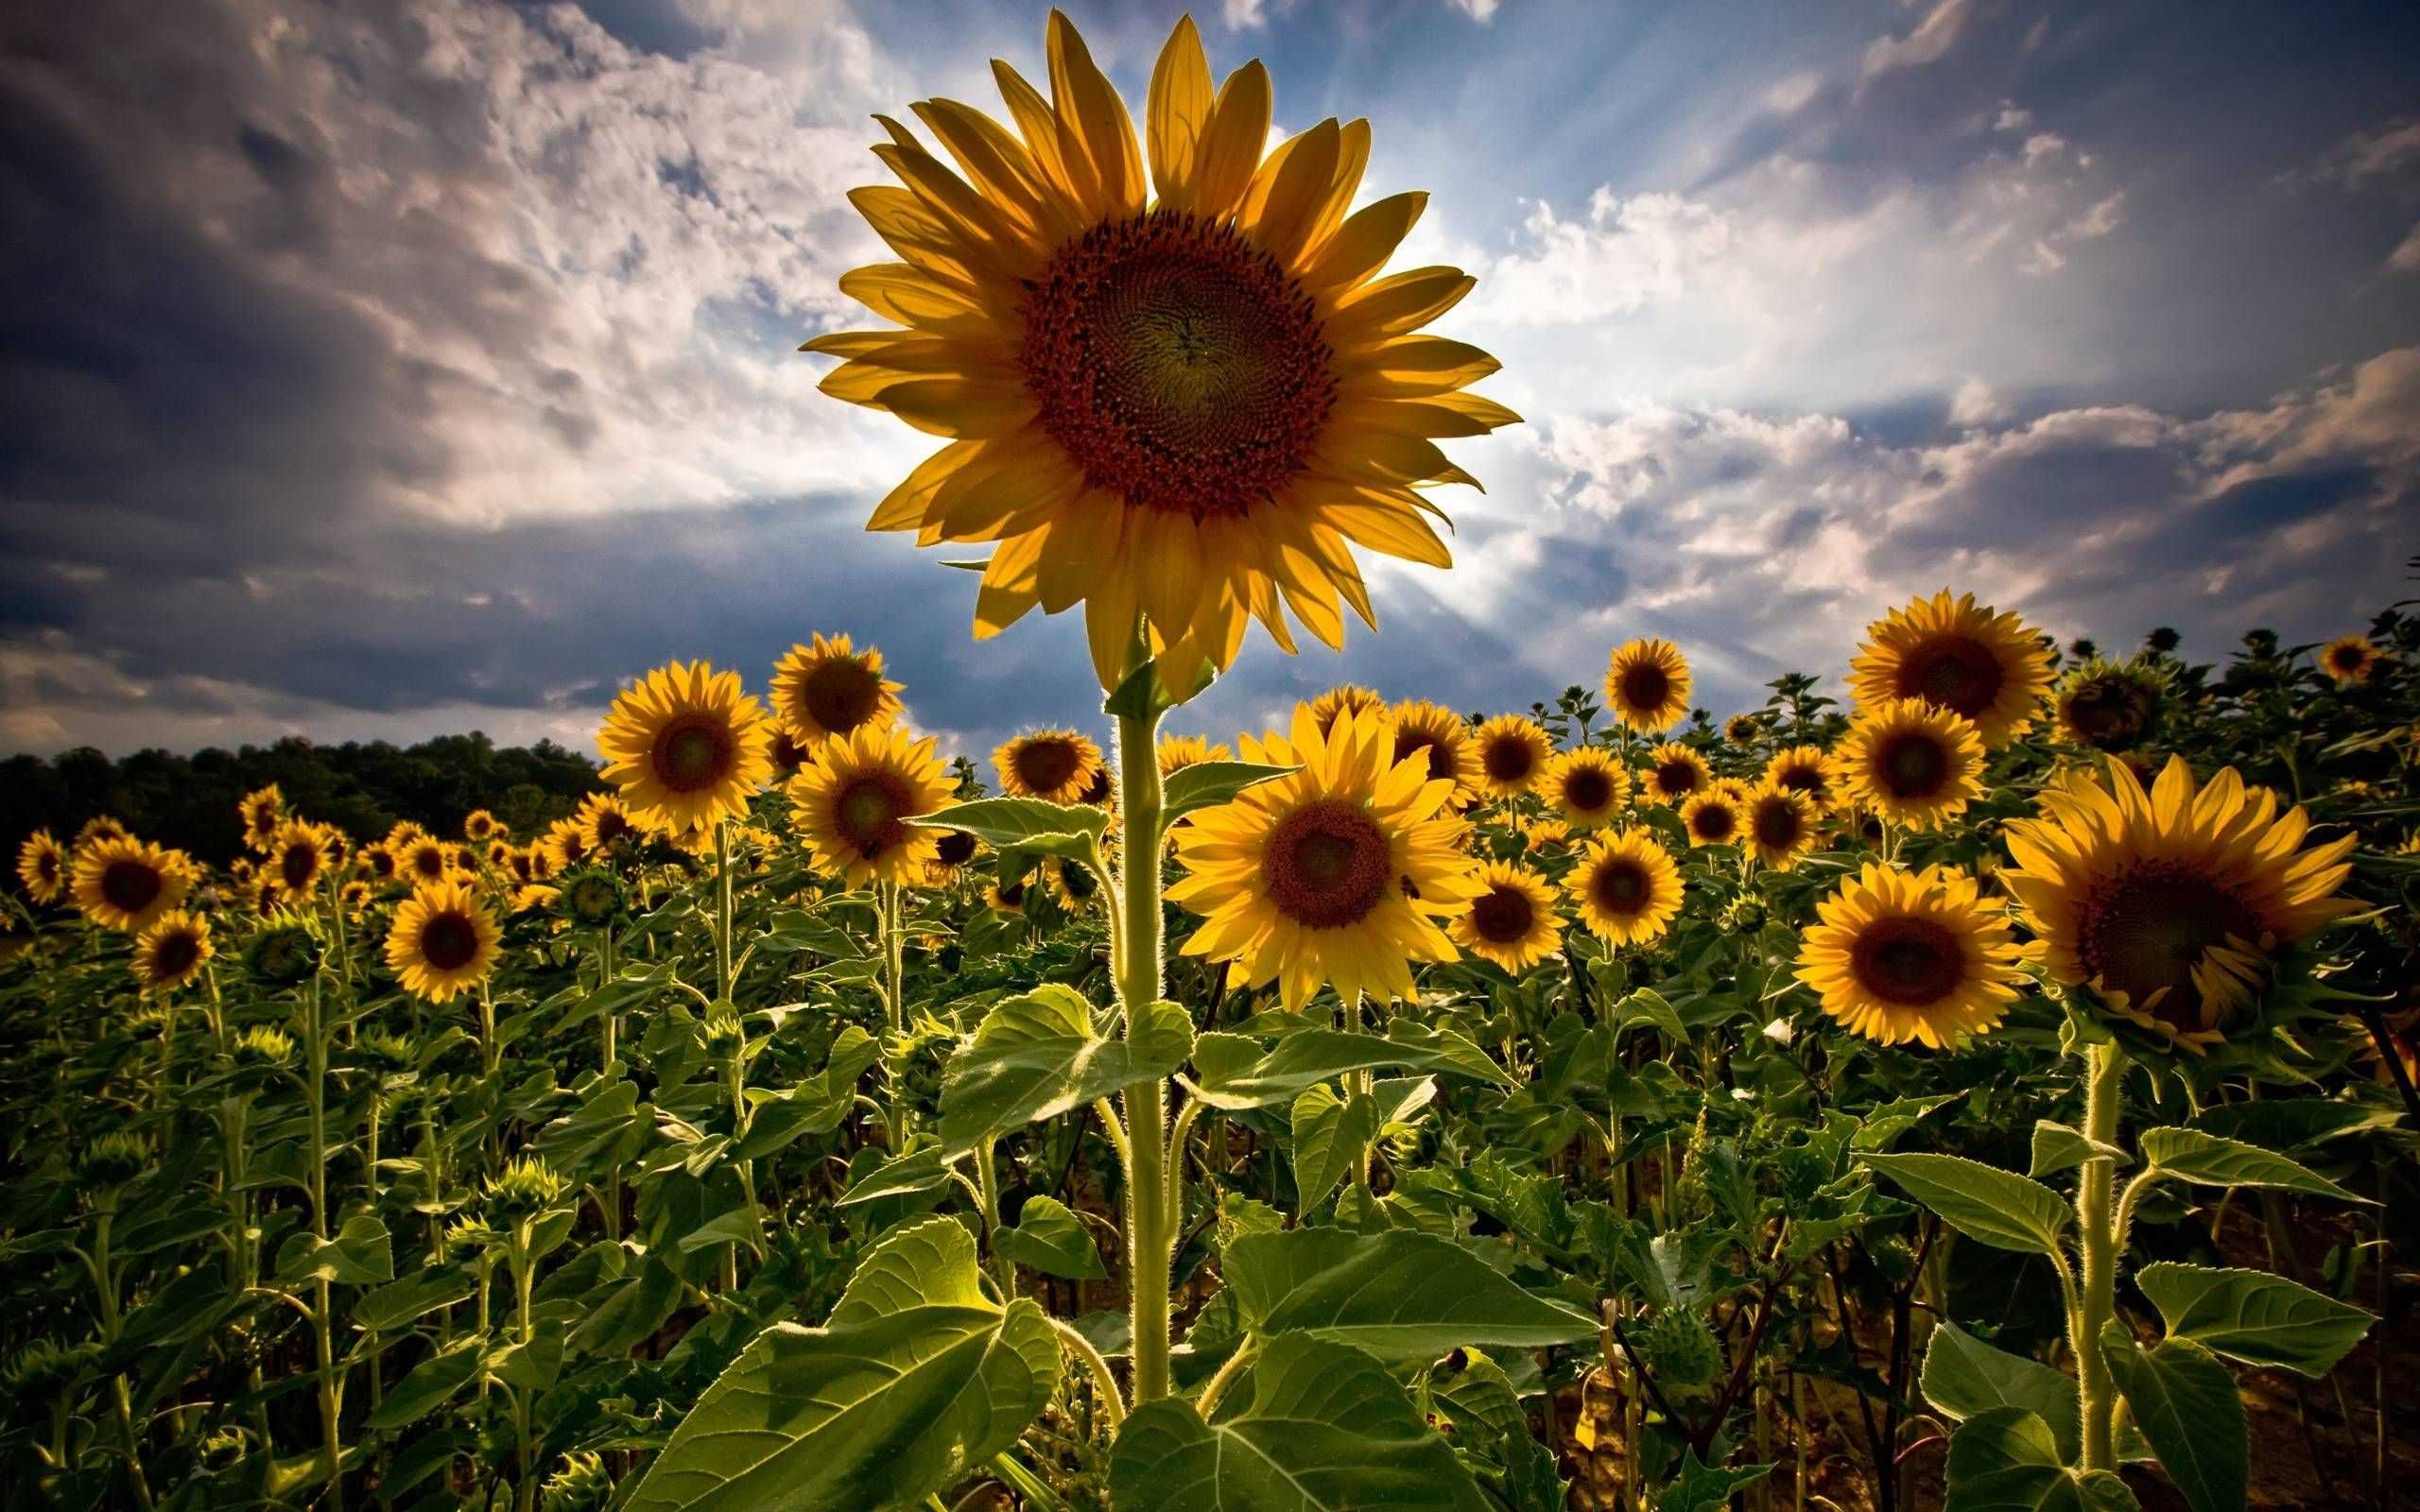 Sunflower iPhone Wallpapers - Top Free Sunflower iPhone